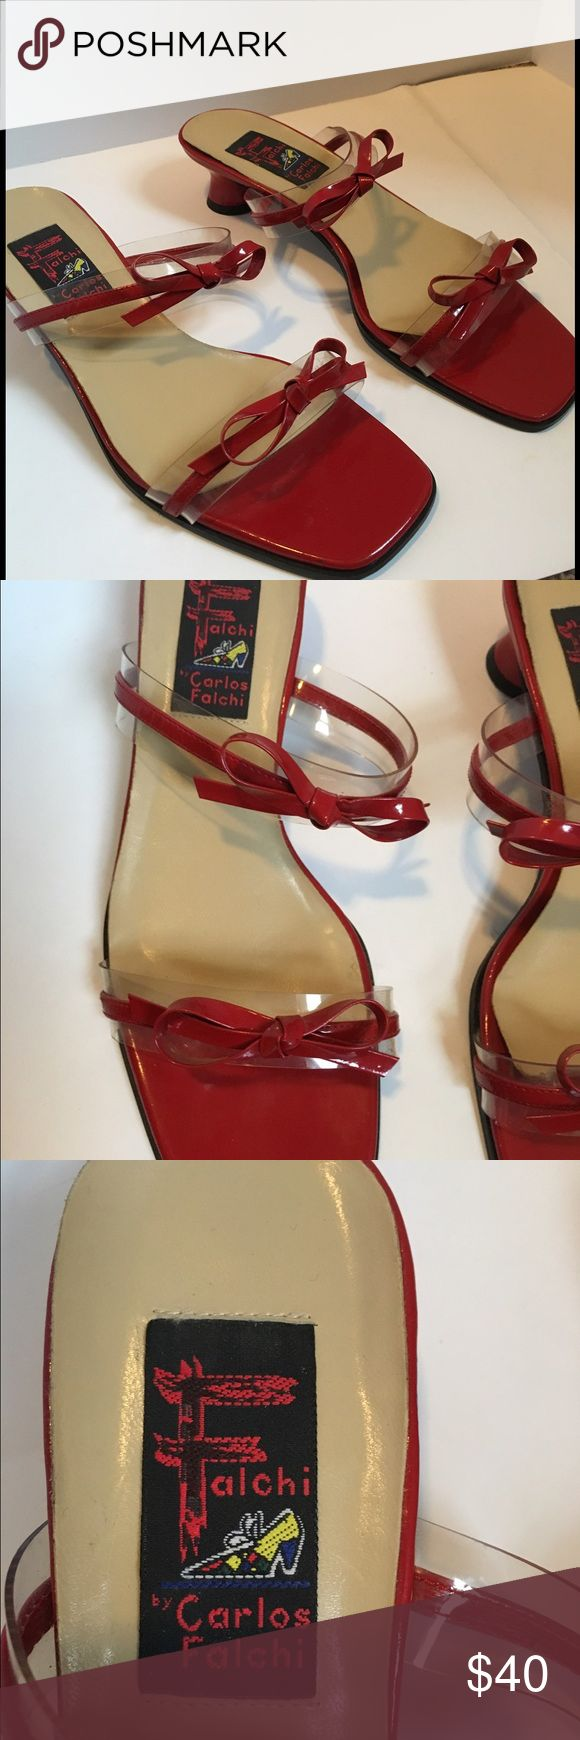 Vintage Carlos Falchi red leather & vinyl mules Vintage red leather/vinyl Carlos Falchi mules. Clear vinyl underneath bow straps. Barely any wear at all! May never have been worn!❤ Carlos Falchi Shoes Mules & Clogs